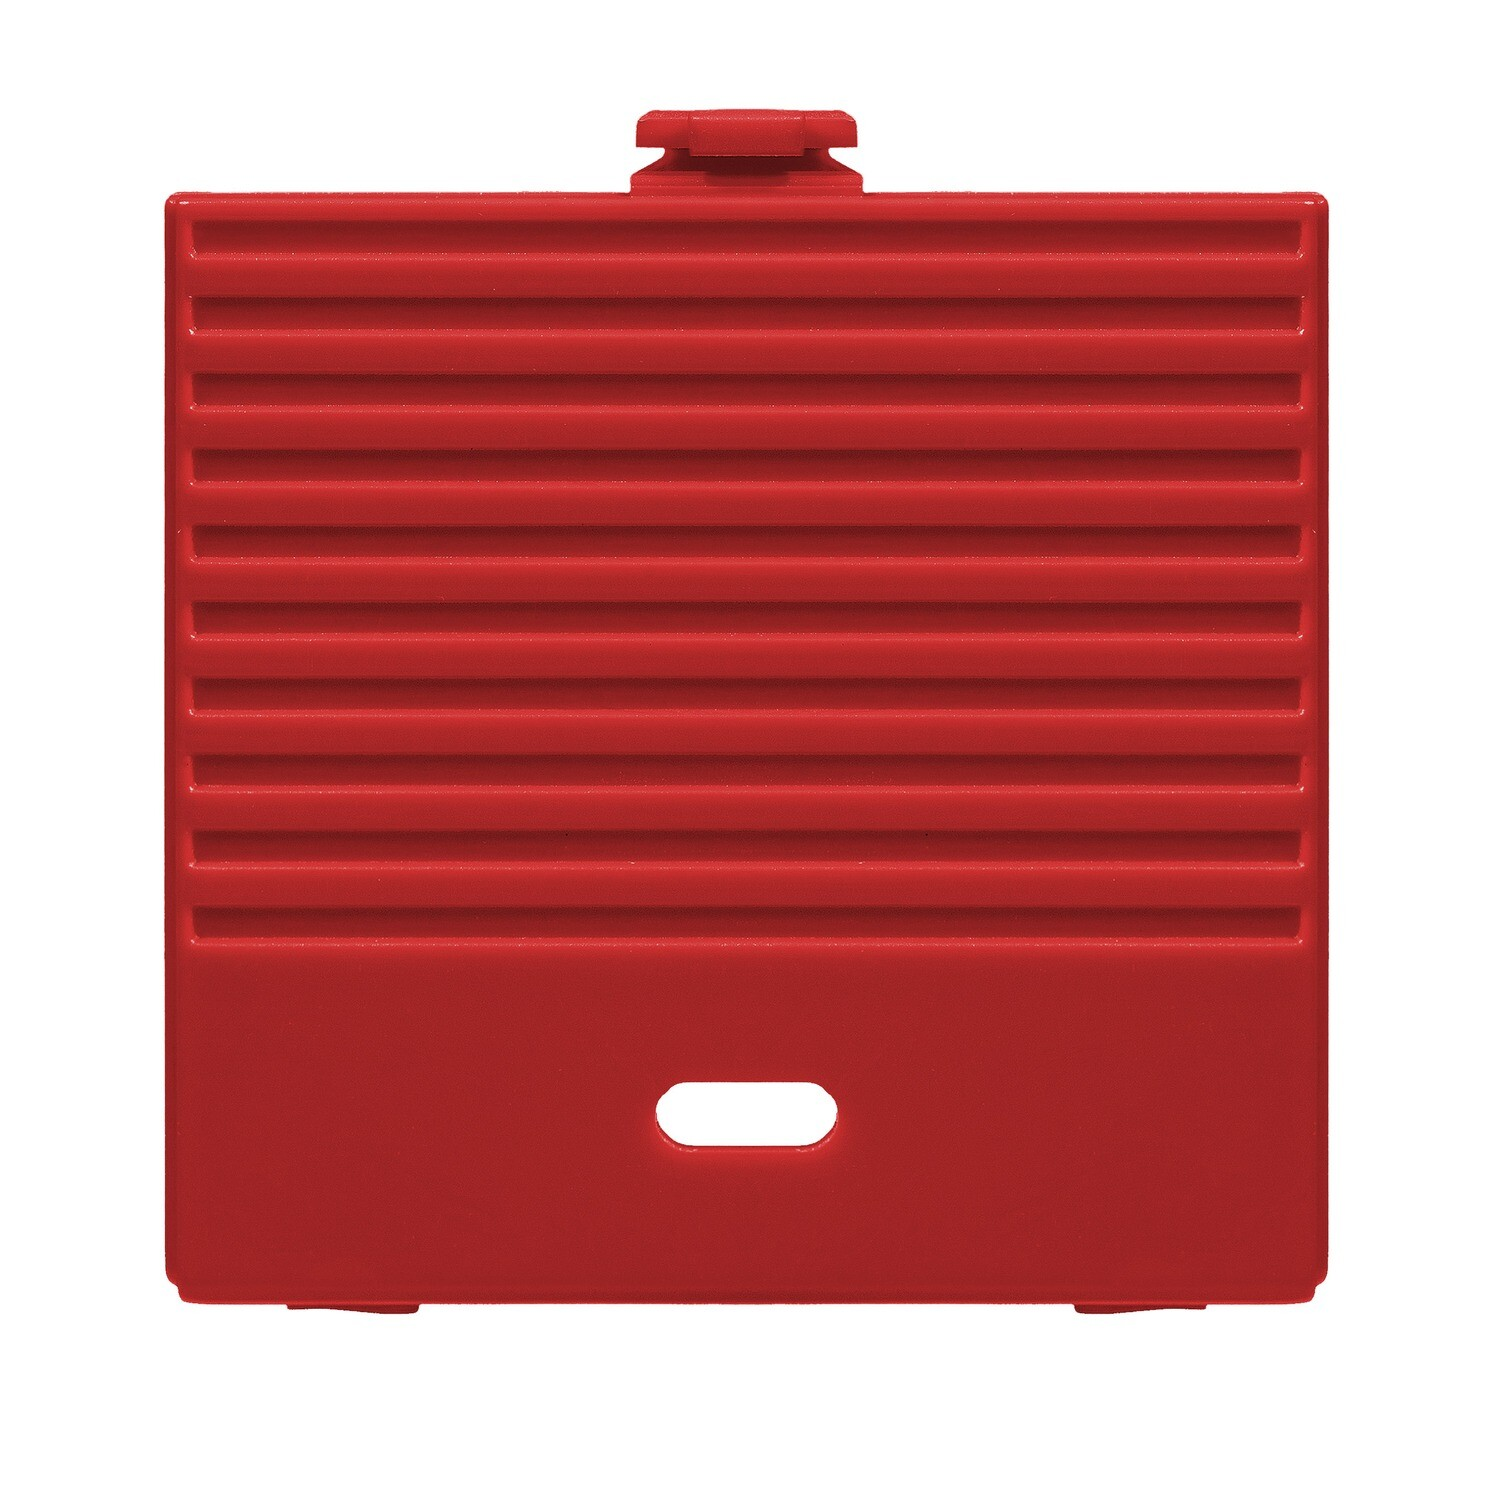 Game Boy Original USB-C Battery Cover (Pearl Red)